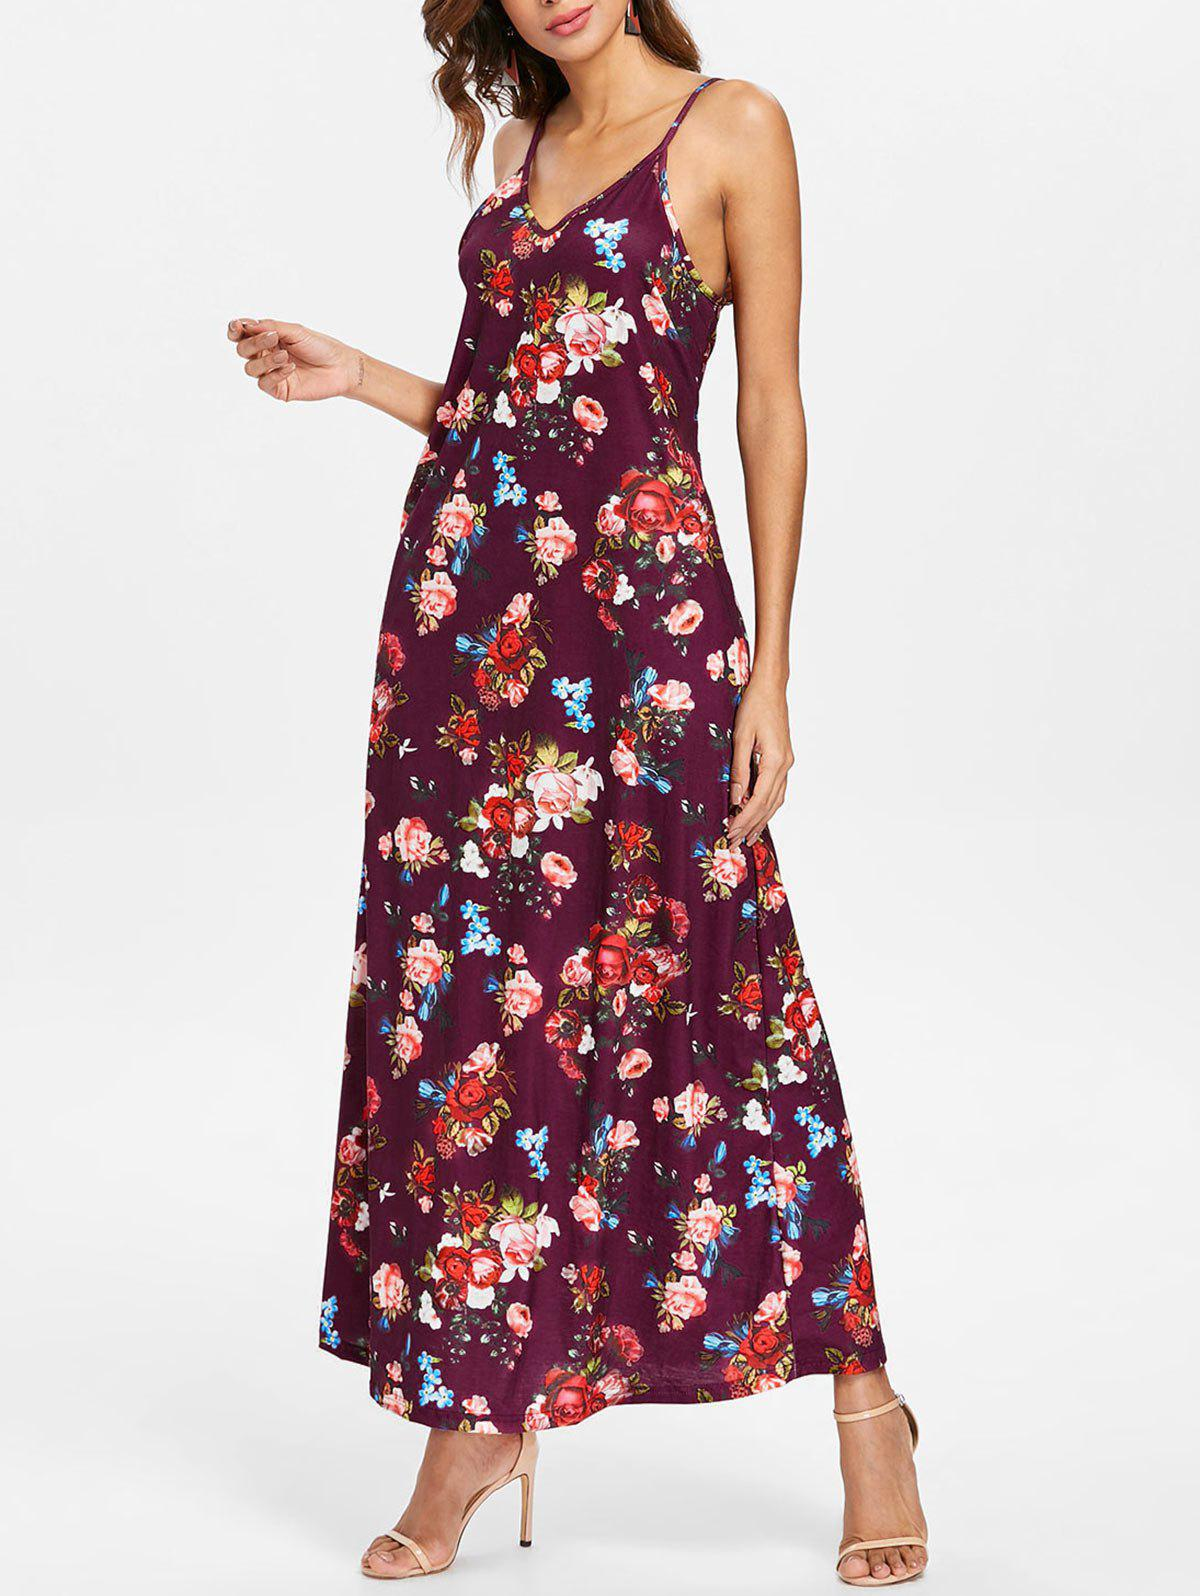 Floral Print Ankle Length Dress - DULL PURPLE XL